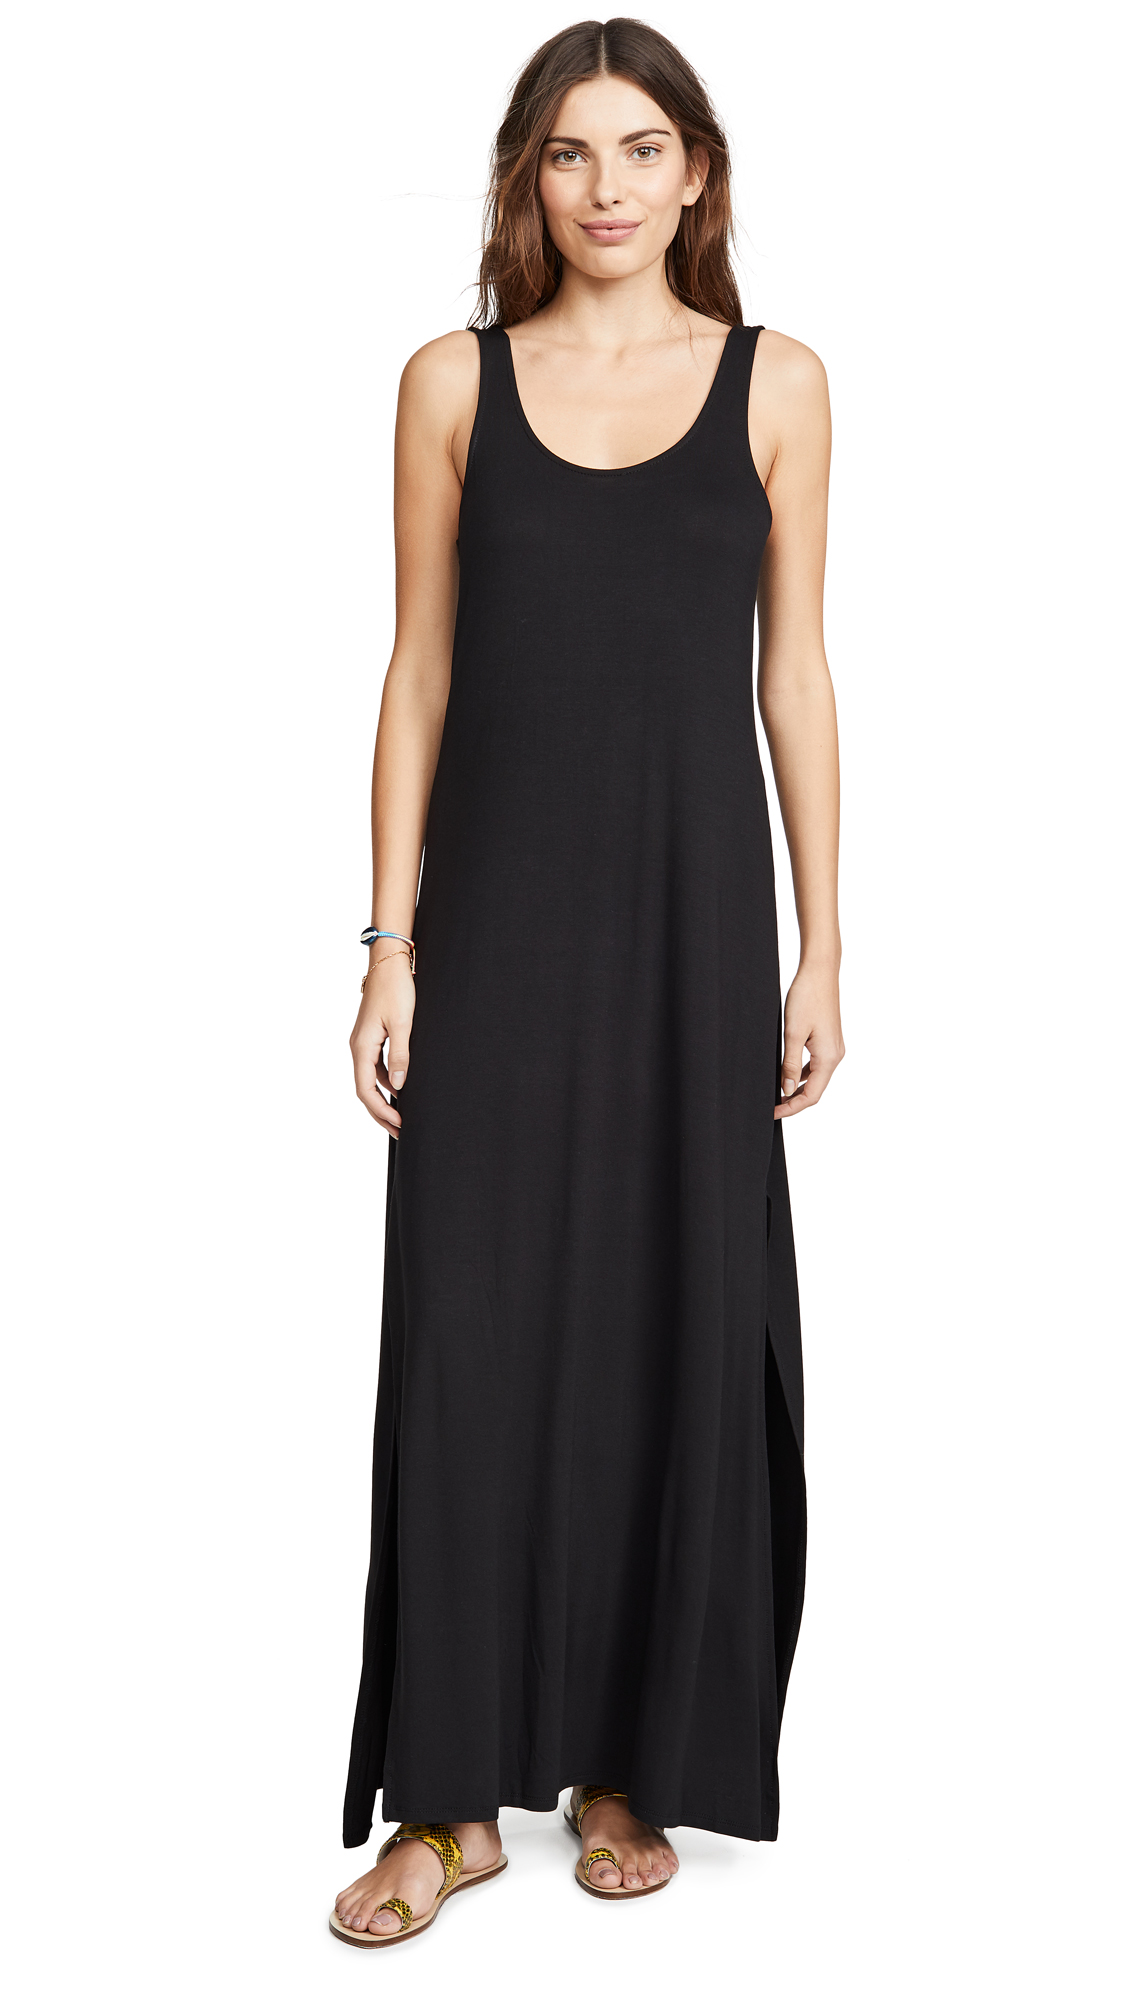 Z Supply Victoria Maxi Dress